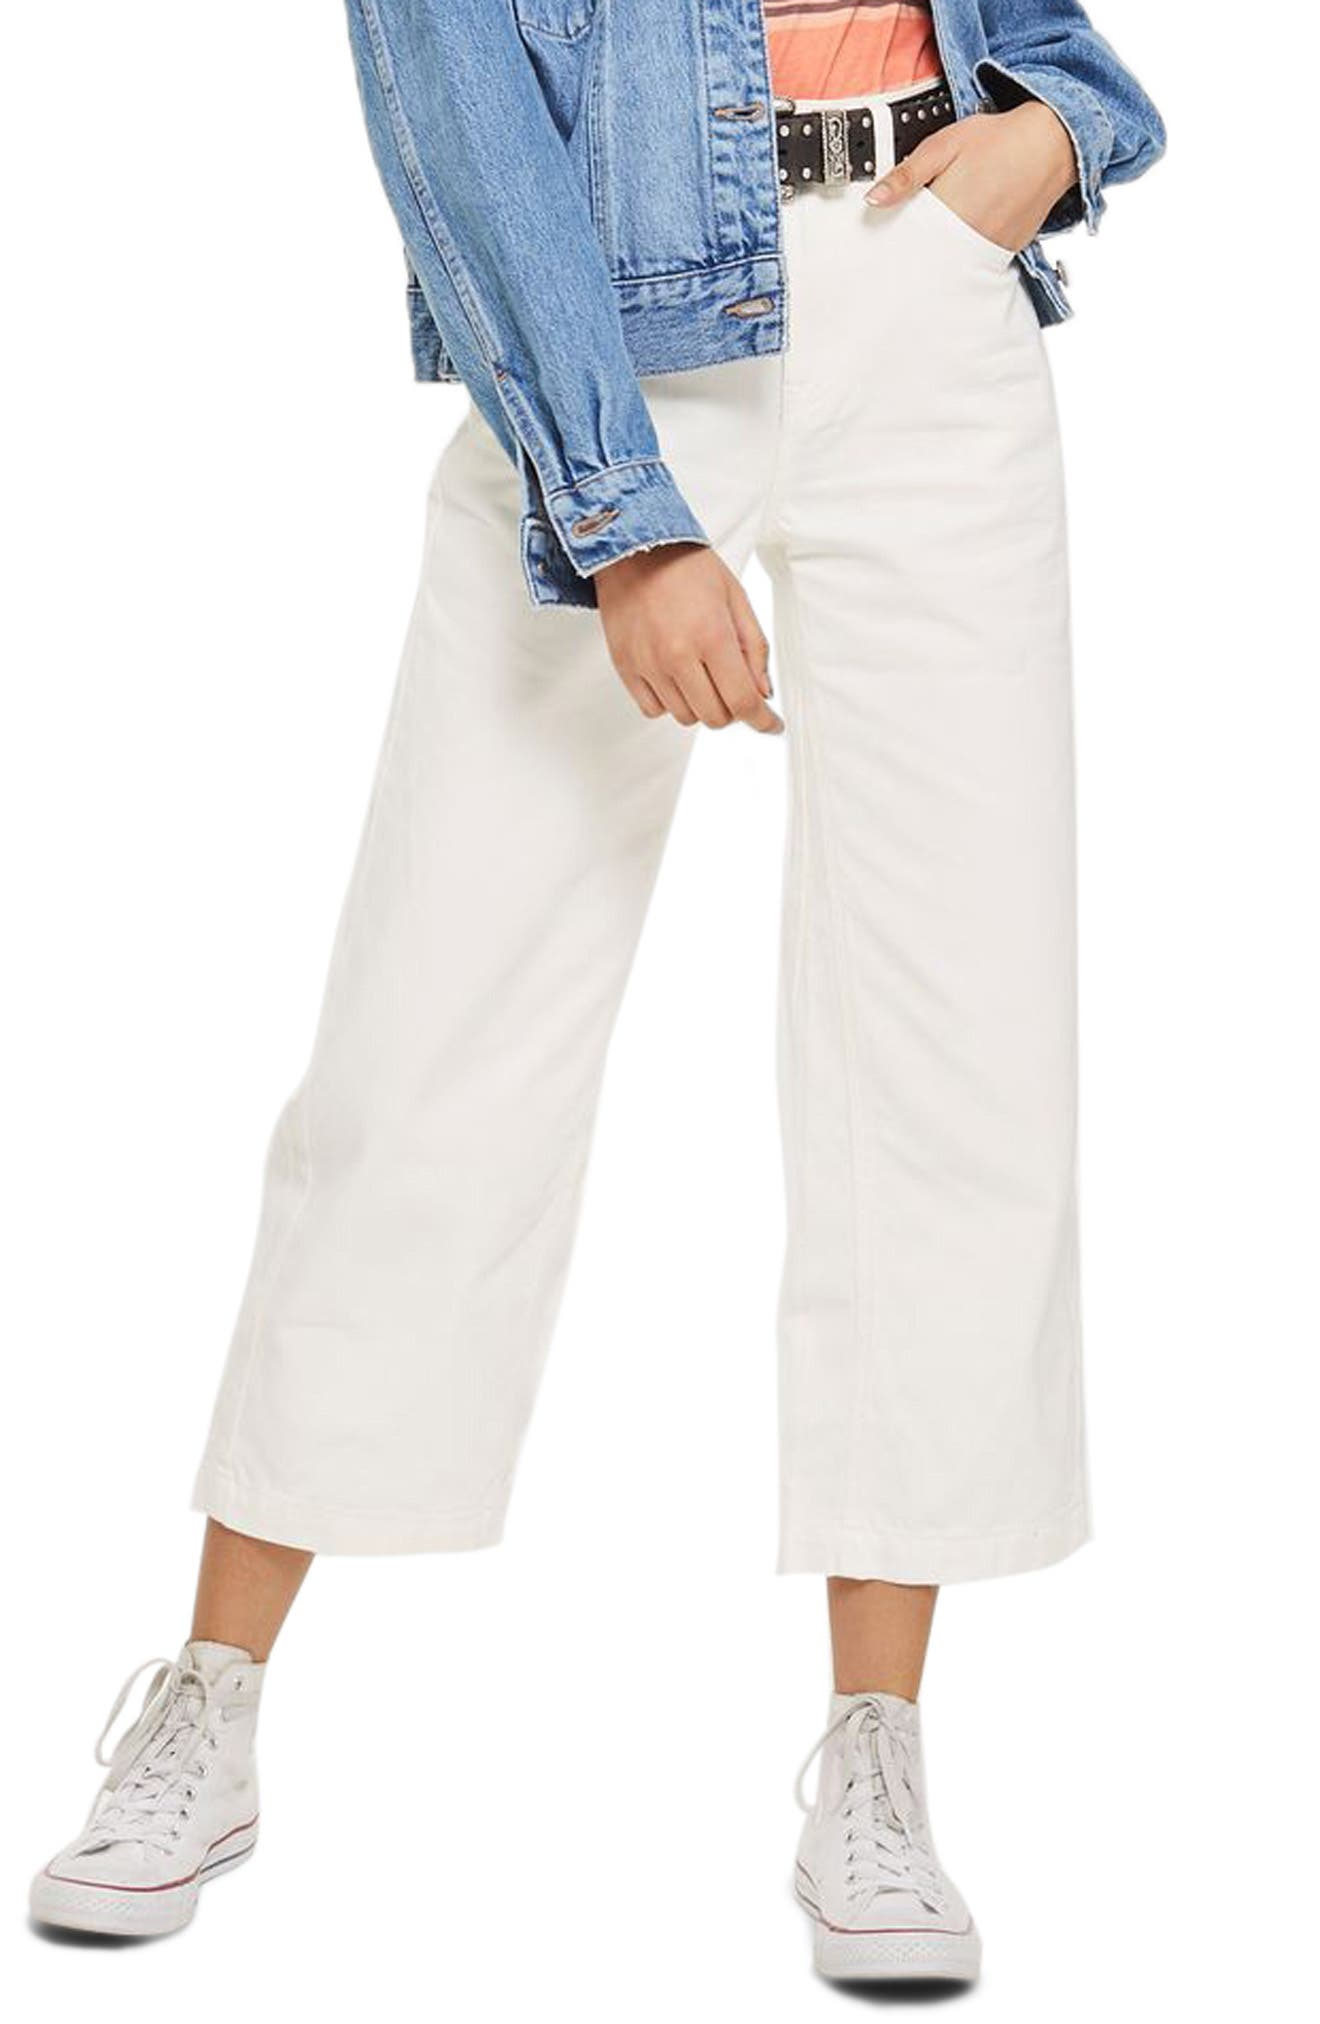 MOTO Cropped Wide Leg Non-Stretch Jeans,                             Main thumbnail 1, color,                             100